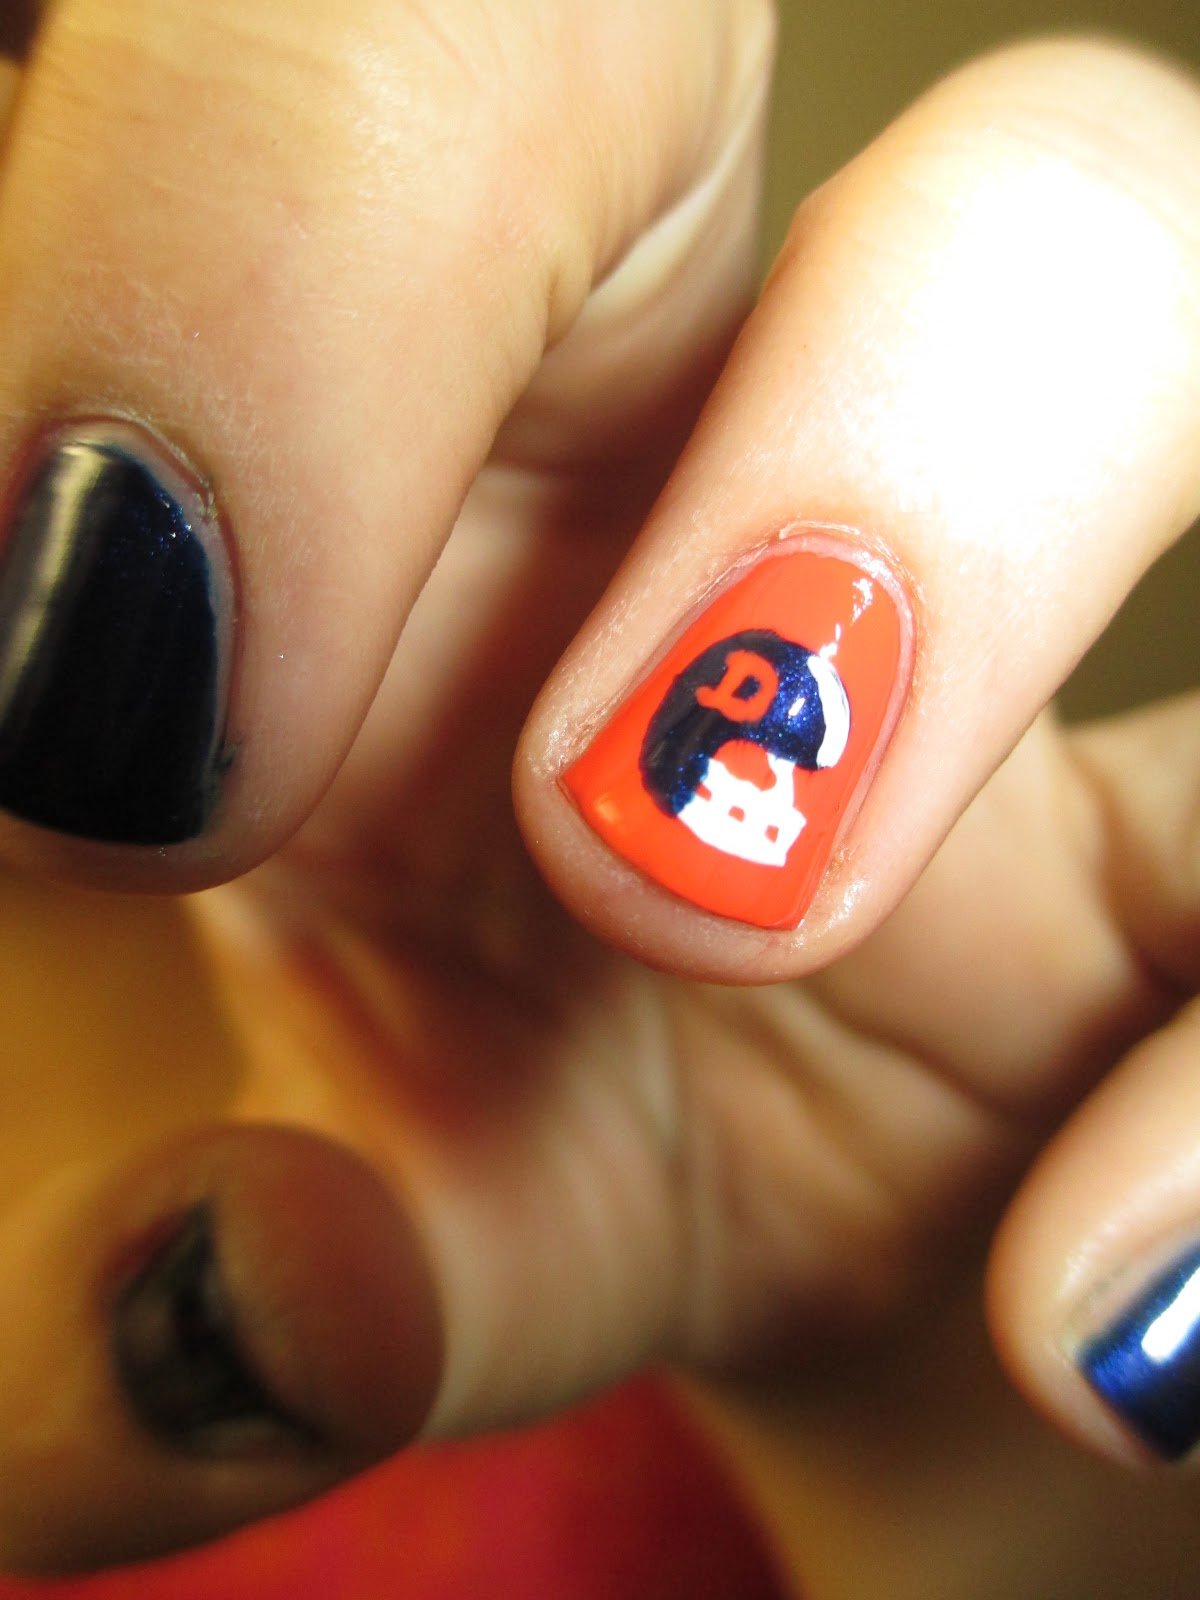 denver broncos nail designs